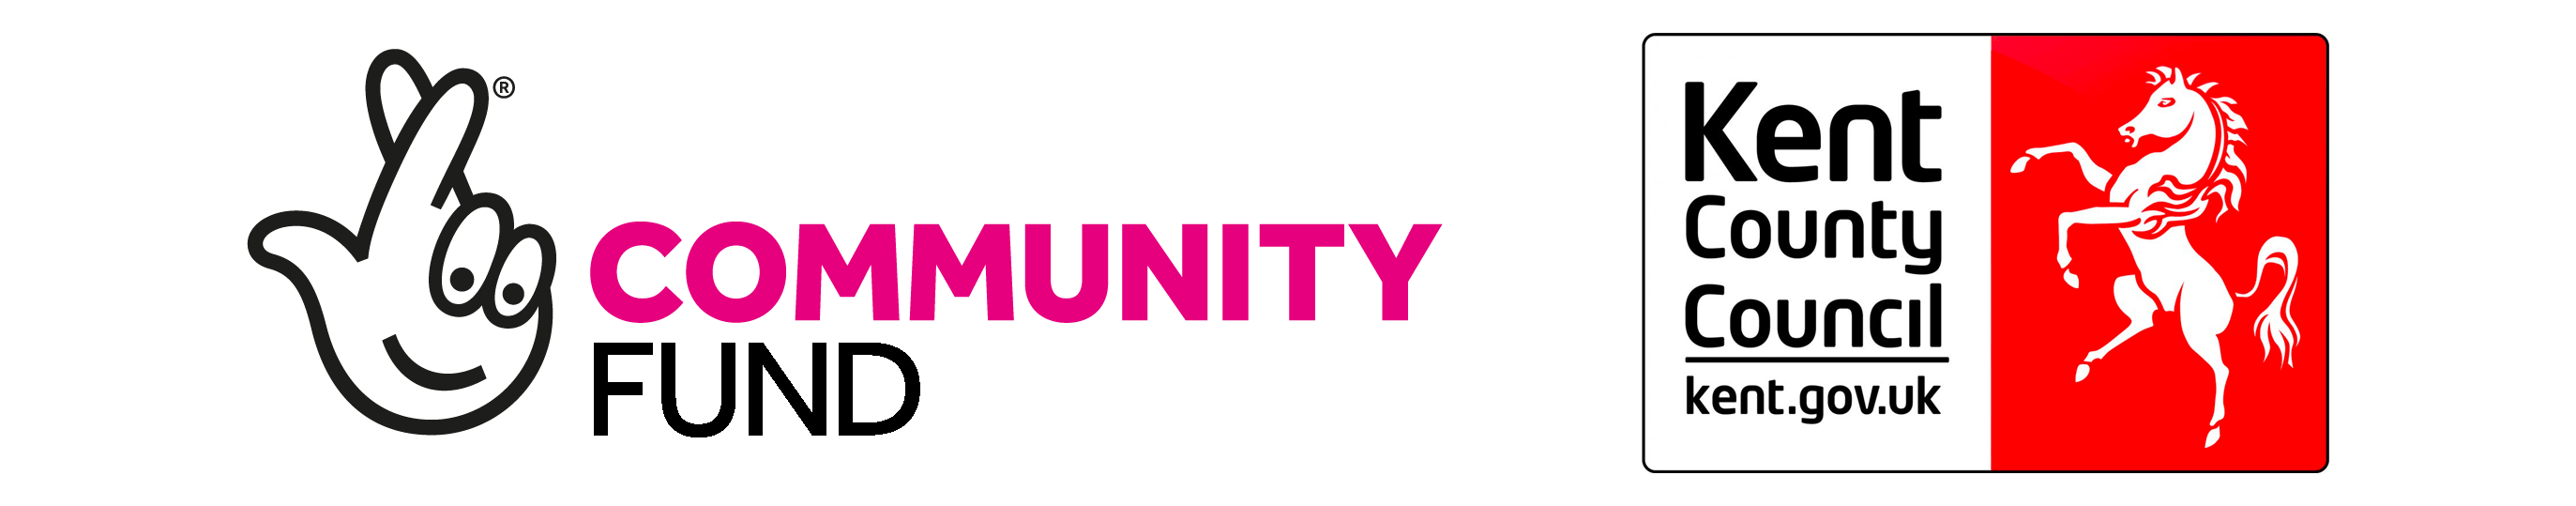 Bounce Back - National Lottery Community Fund and KCC Logo